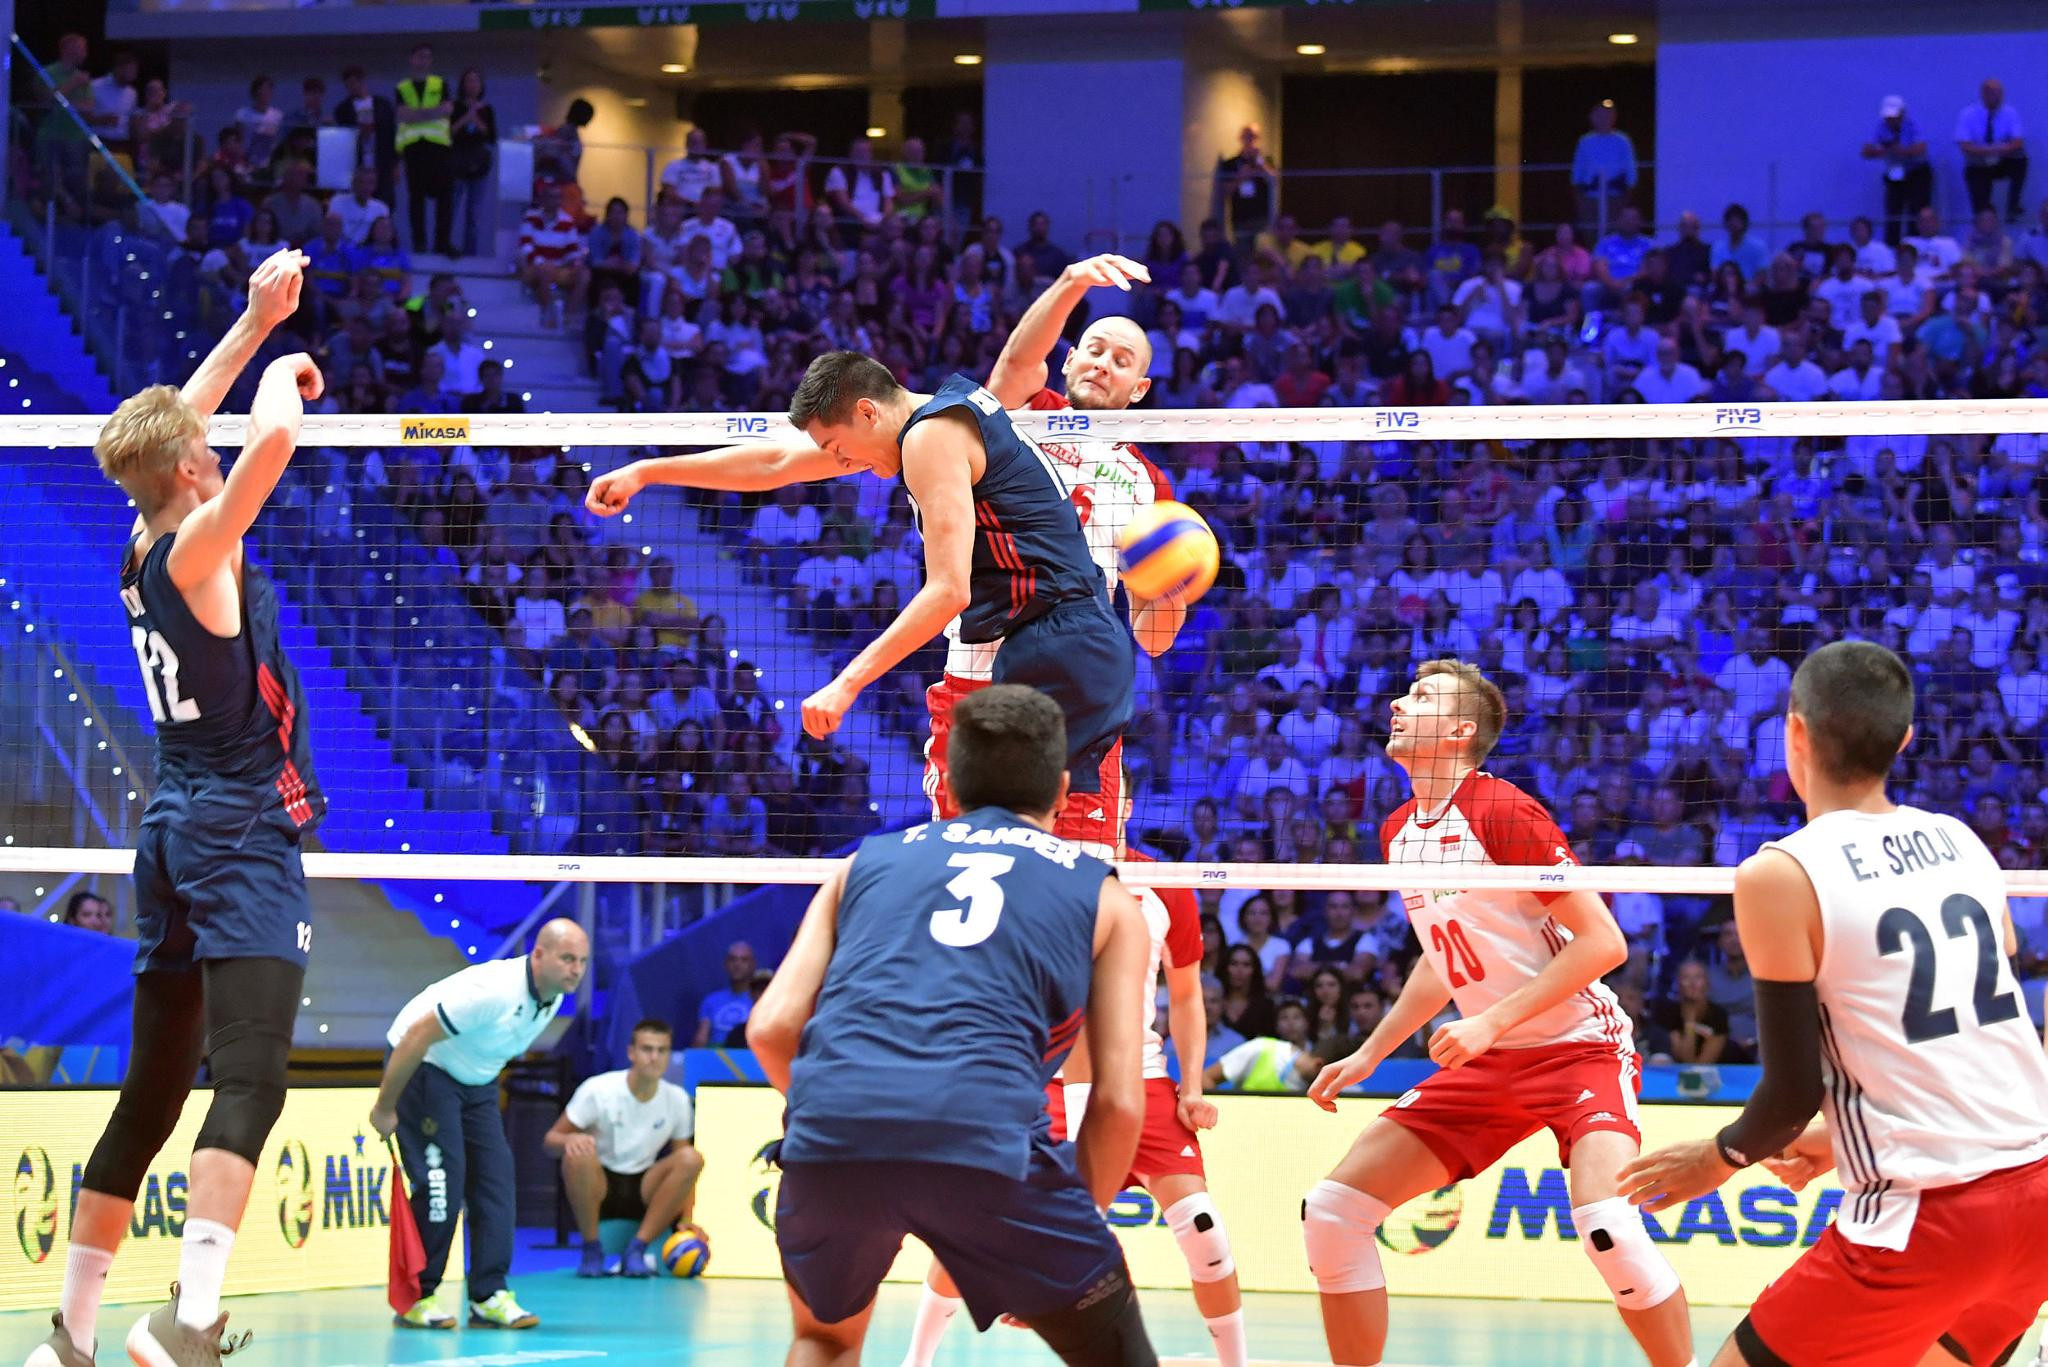 Poland beat the United States in the semi-final of the FIVB Men's Volleyball World Championships in Turin, Italy ©FIVB